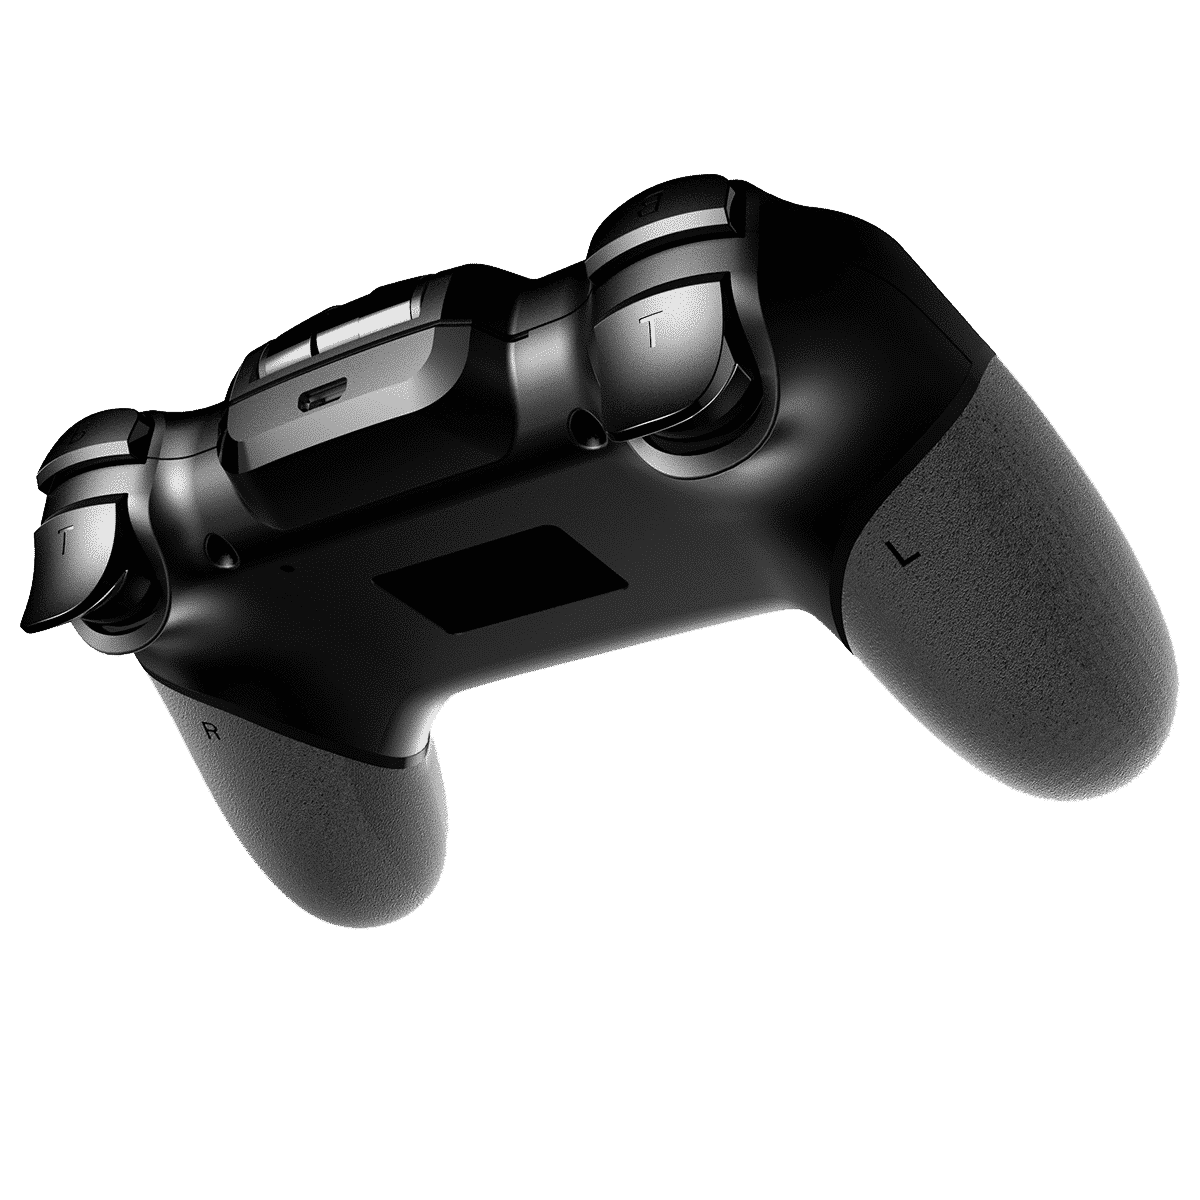 iPega PG-9156 Bluetooth and 2.4Ghz wireless Gamepad for Android, Windows and iOS - Rear View showing Shoulder Buttons